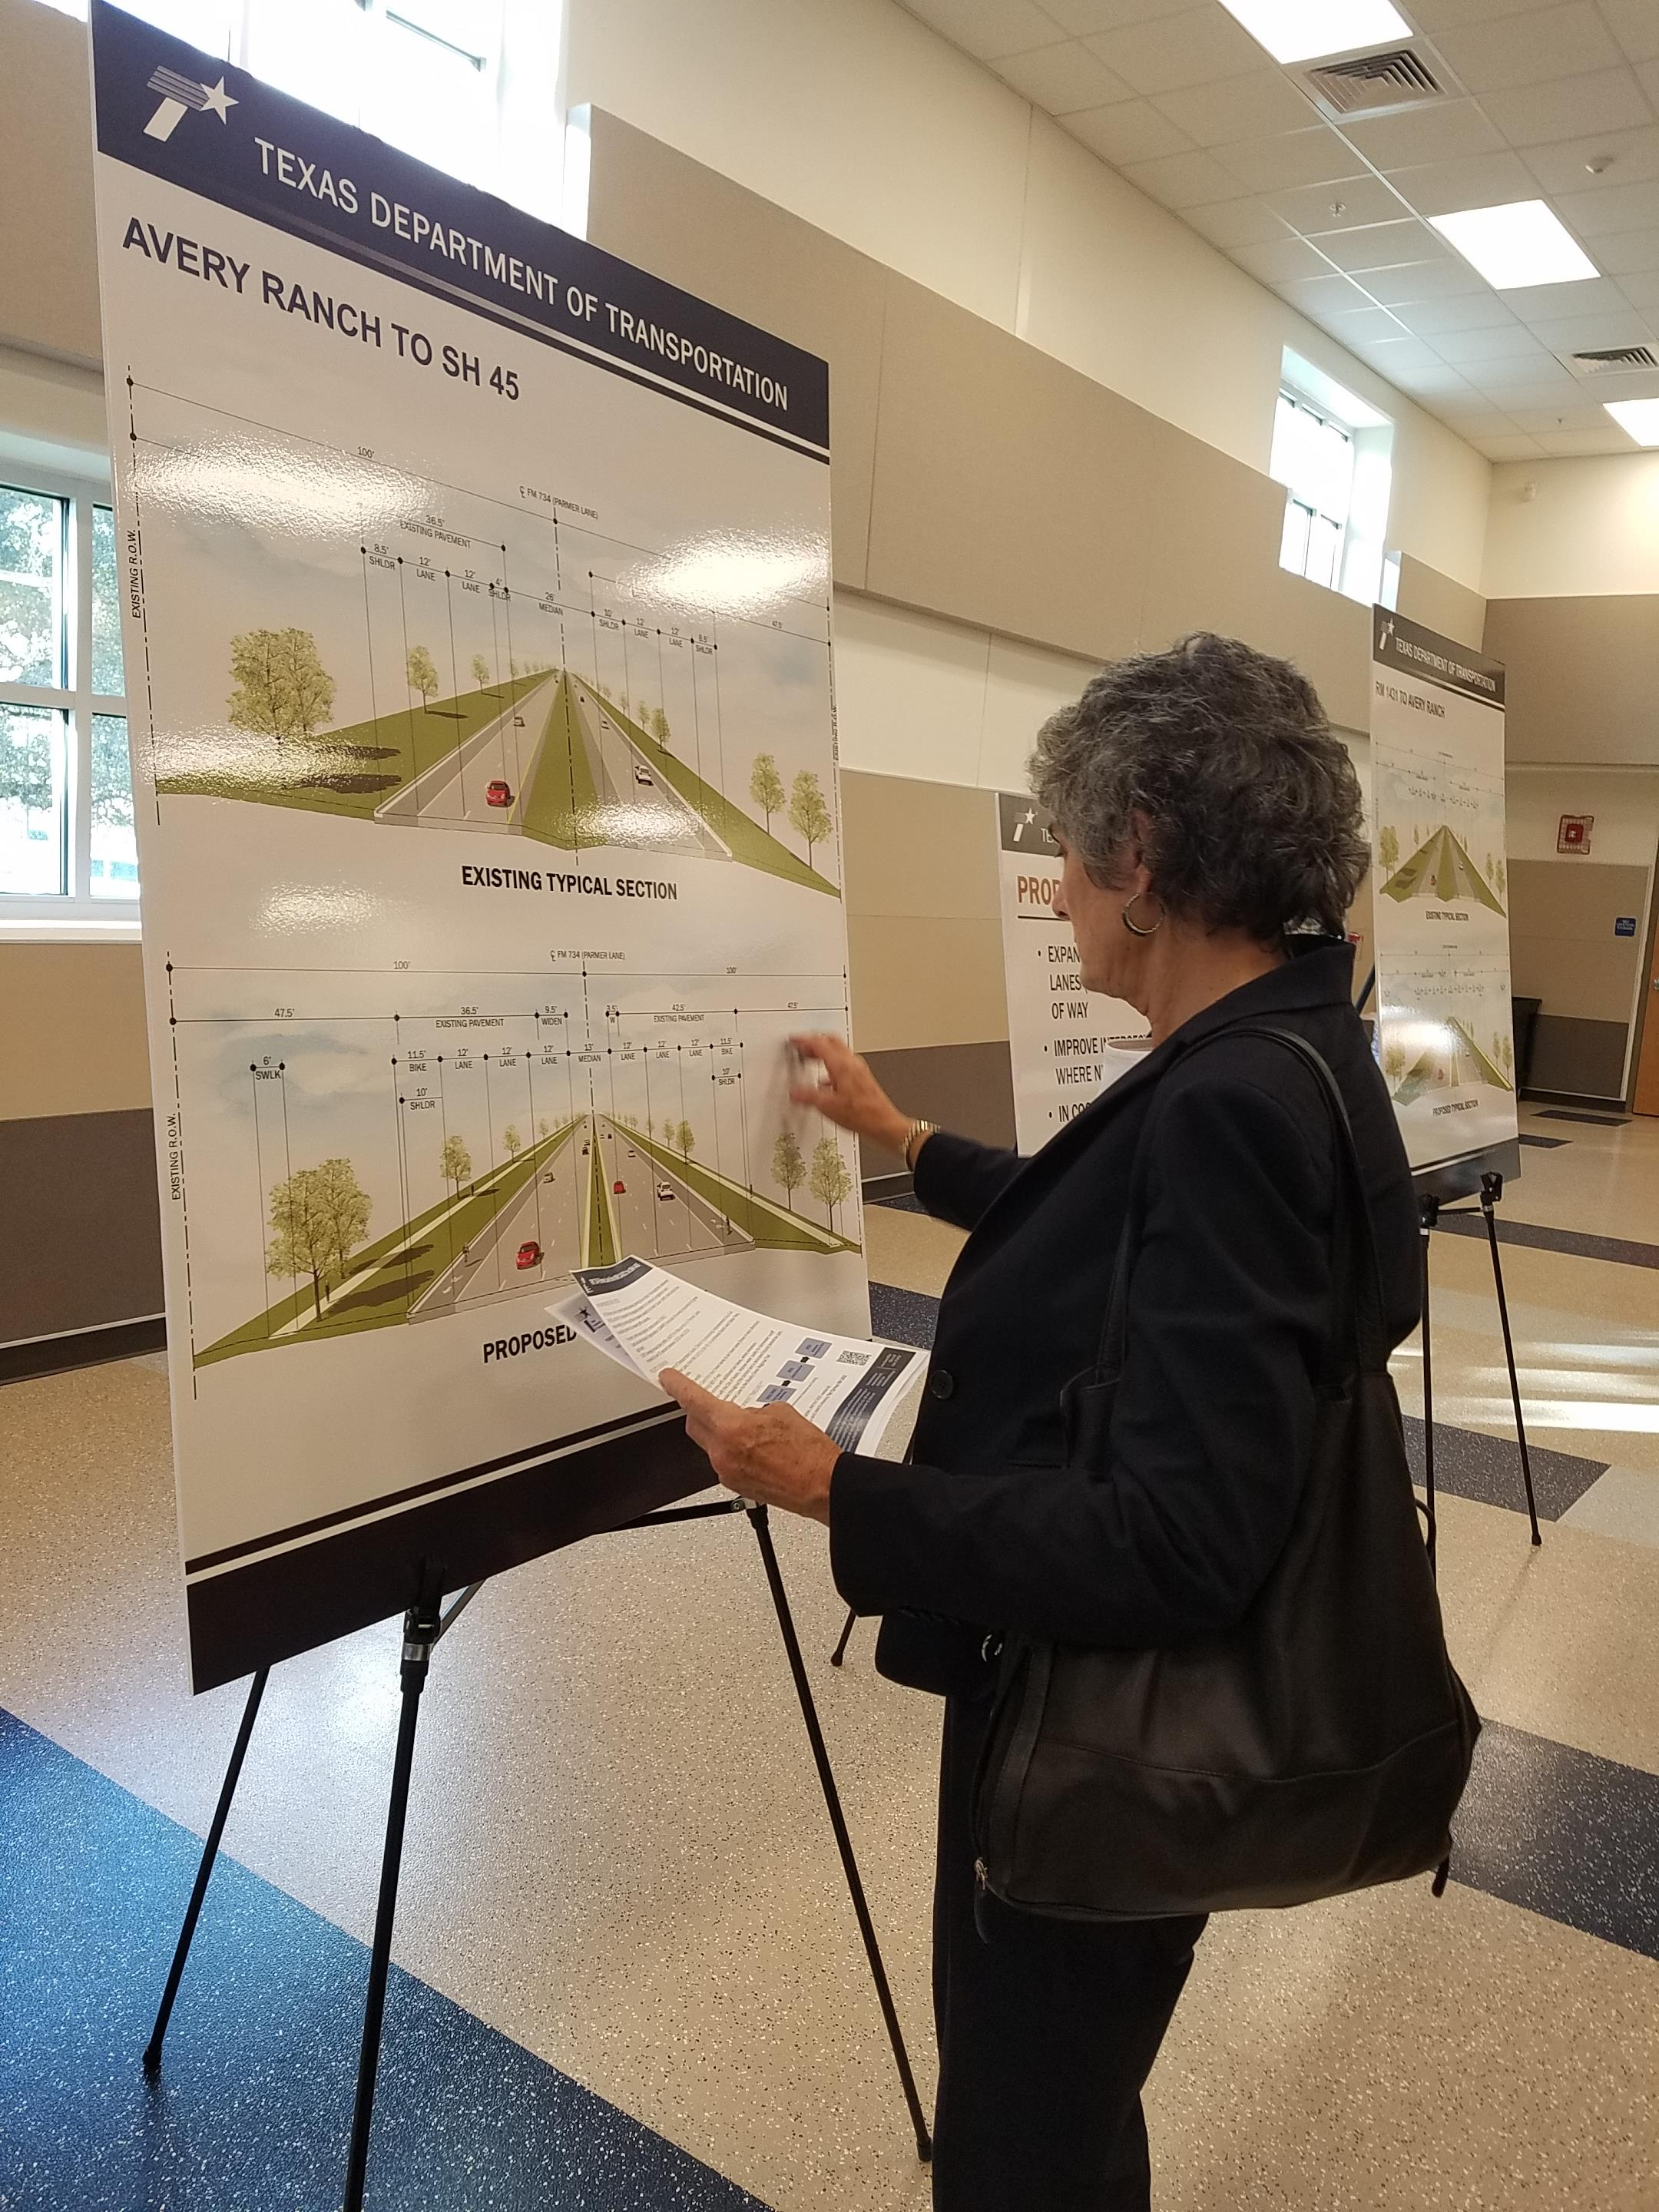 Commissioner Cook studies a chart with the proposed expansion from Avery Ranch to SH 45.